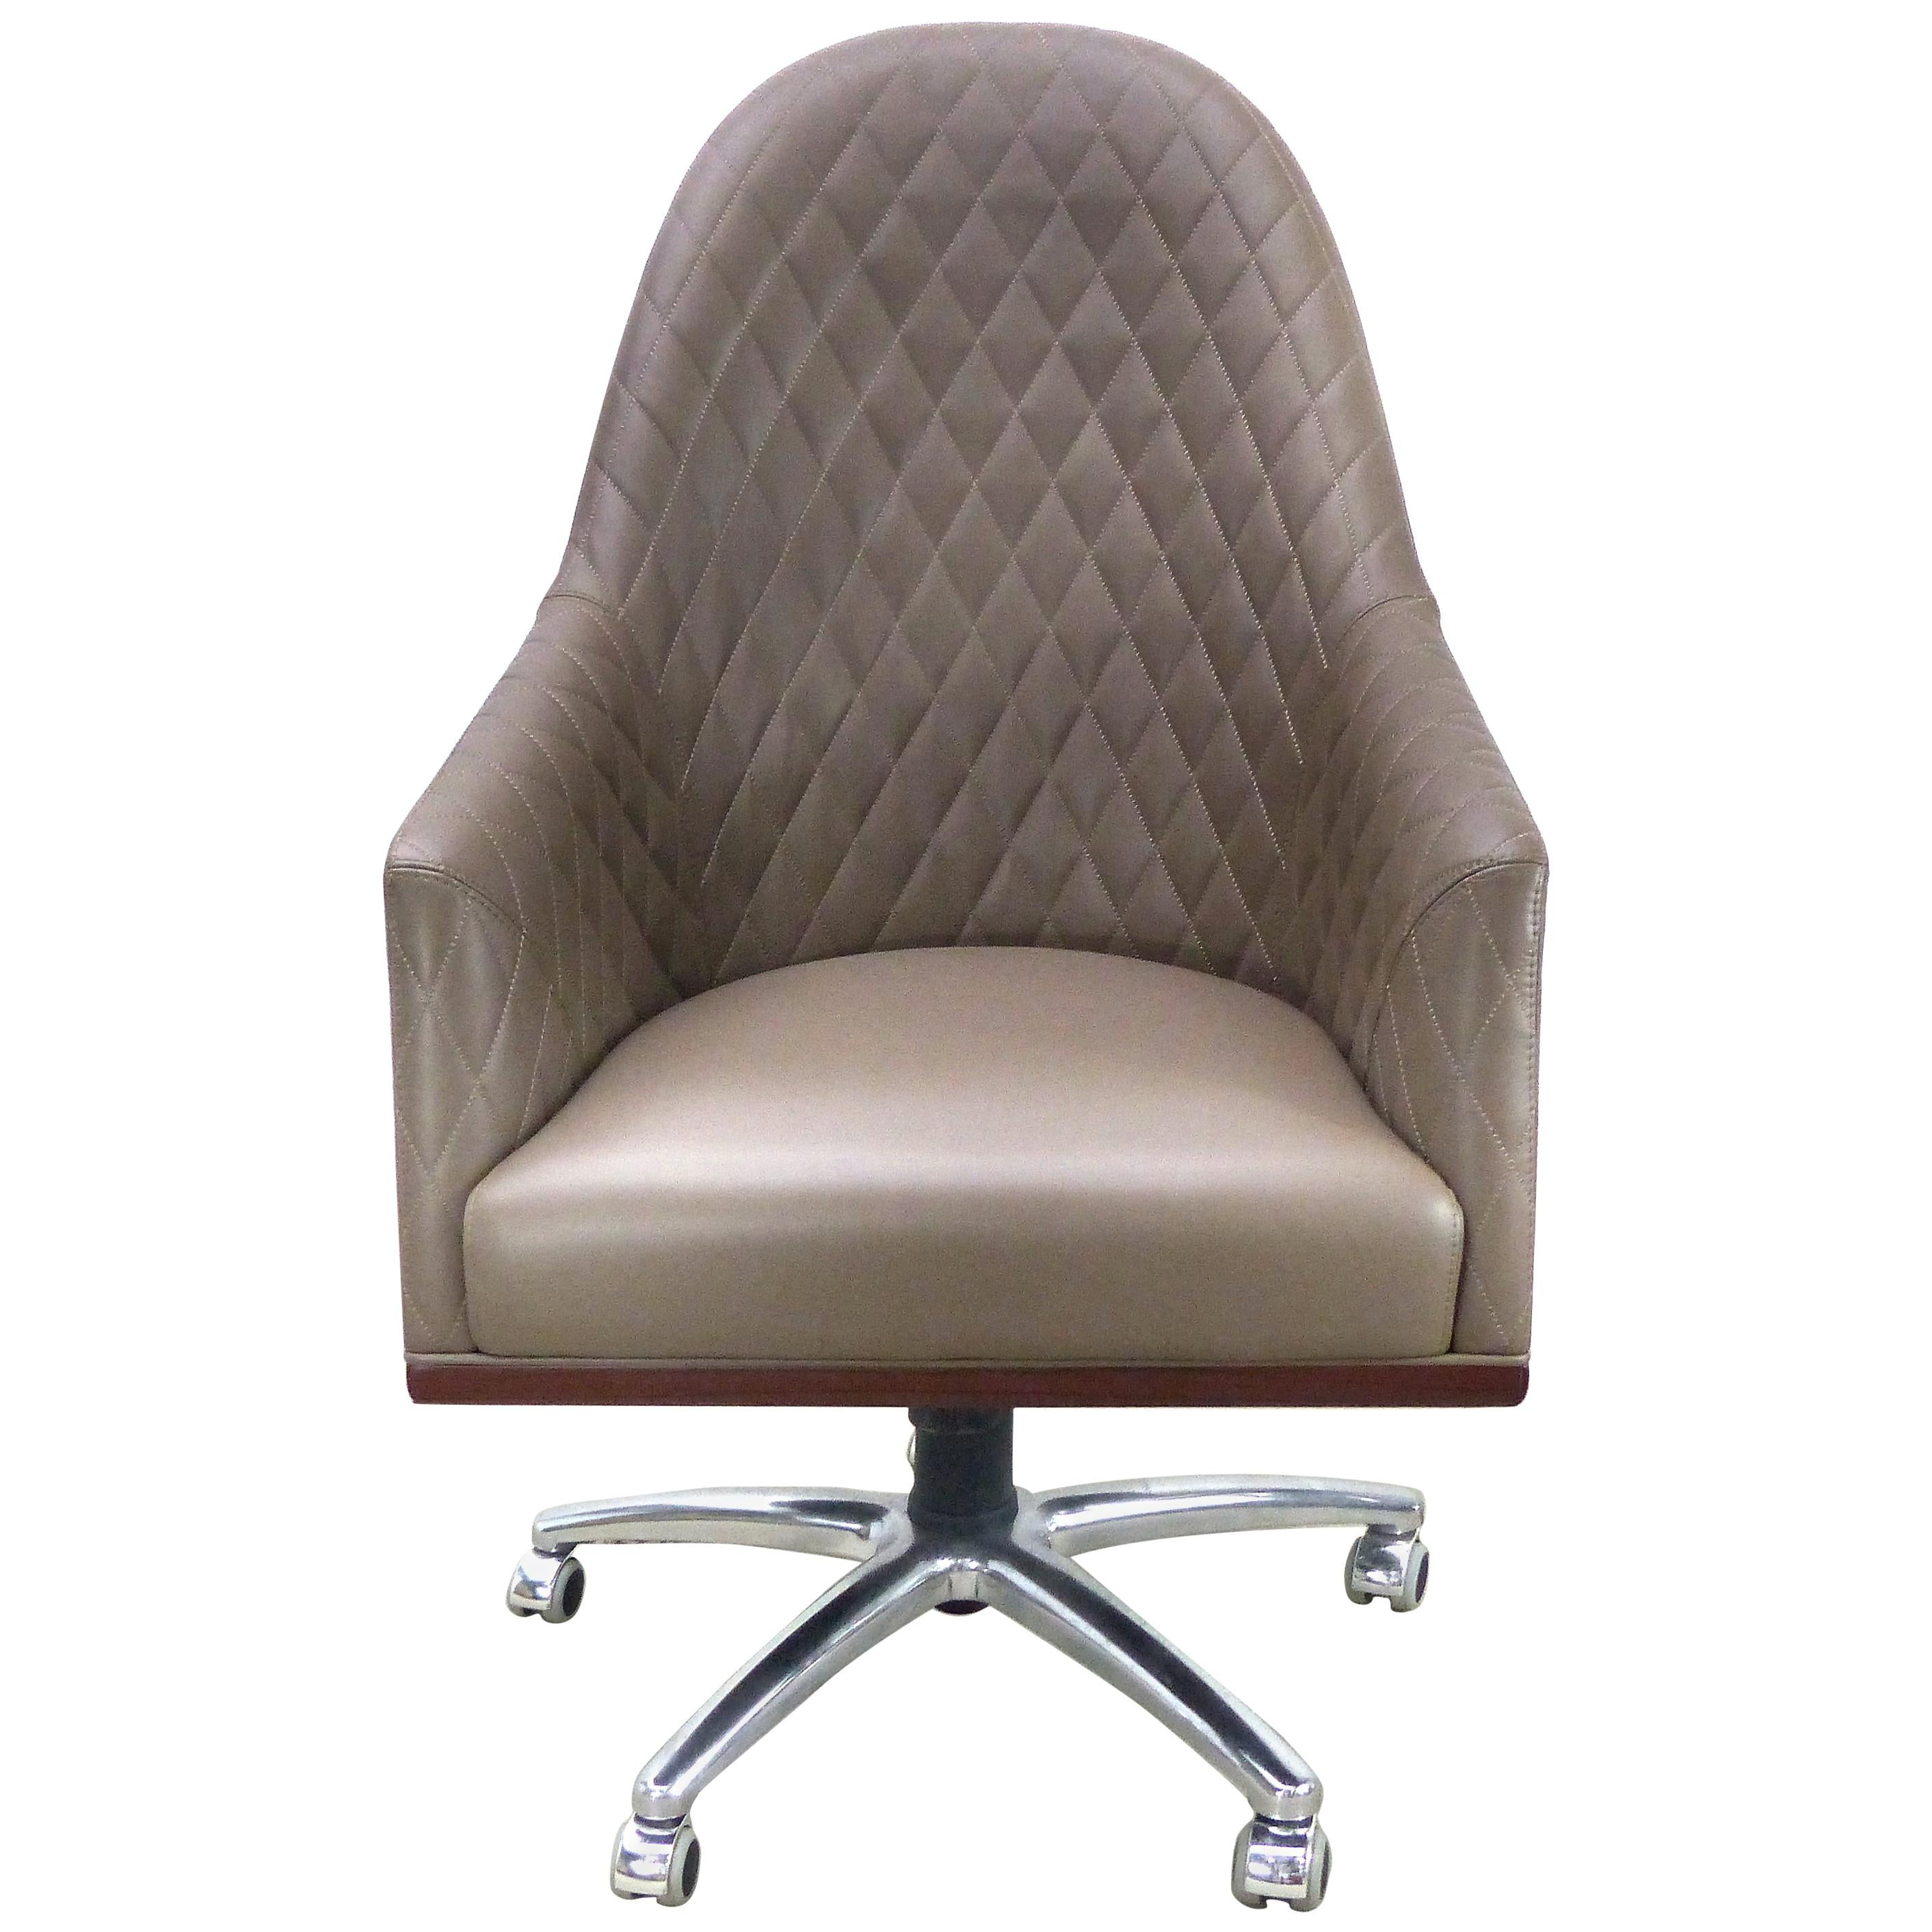 Leather Swivel Desk Chair by Umberto Asnago for Medea Mobiledia, Italy